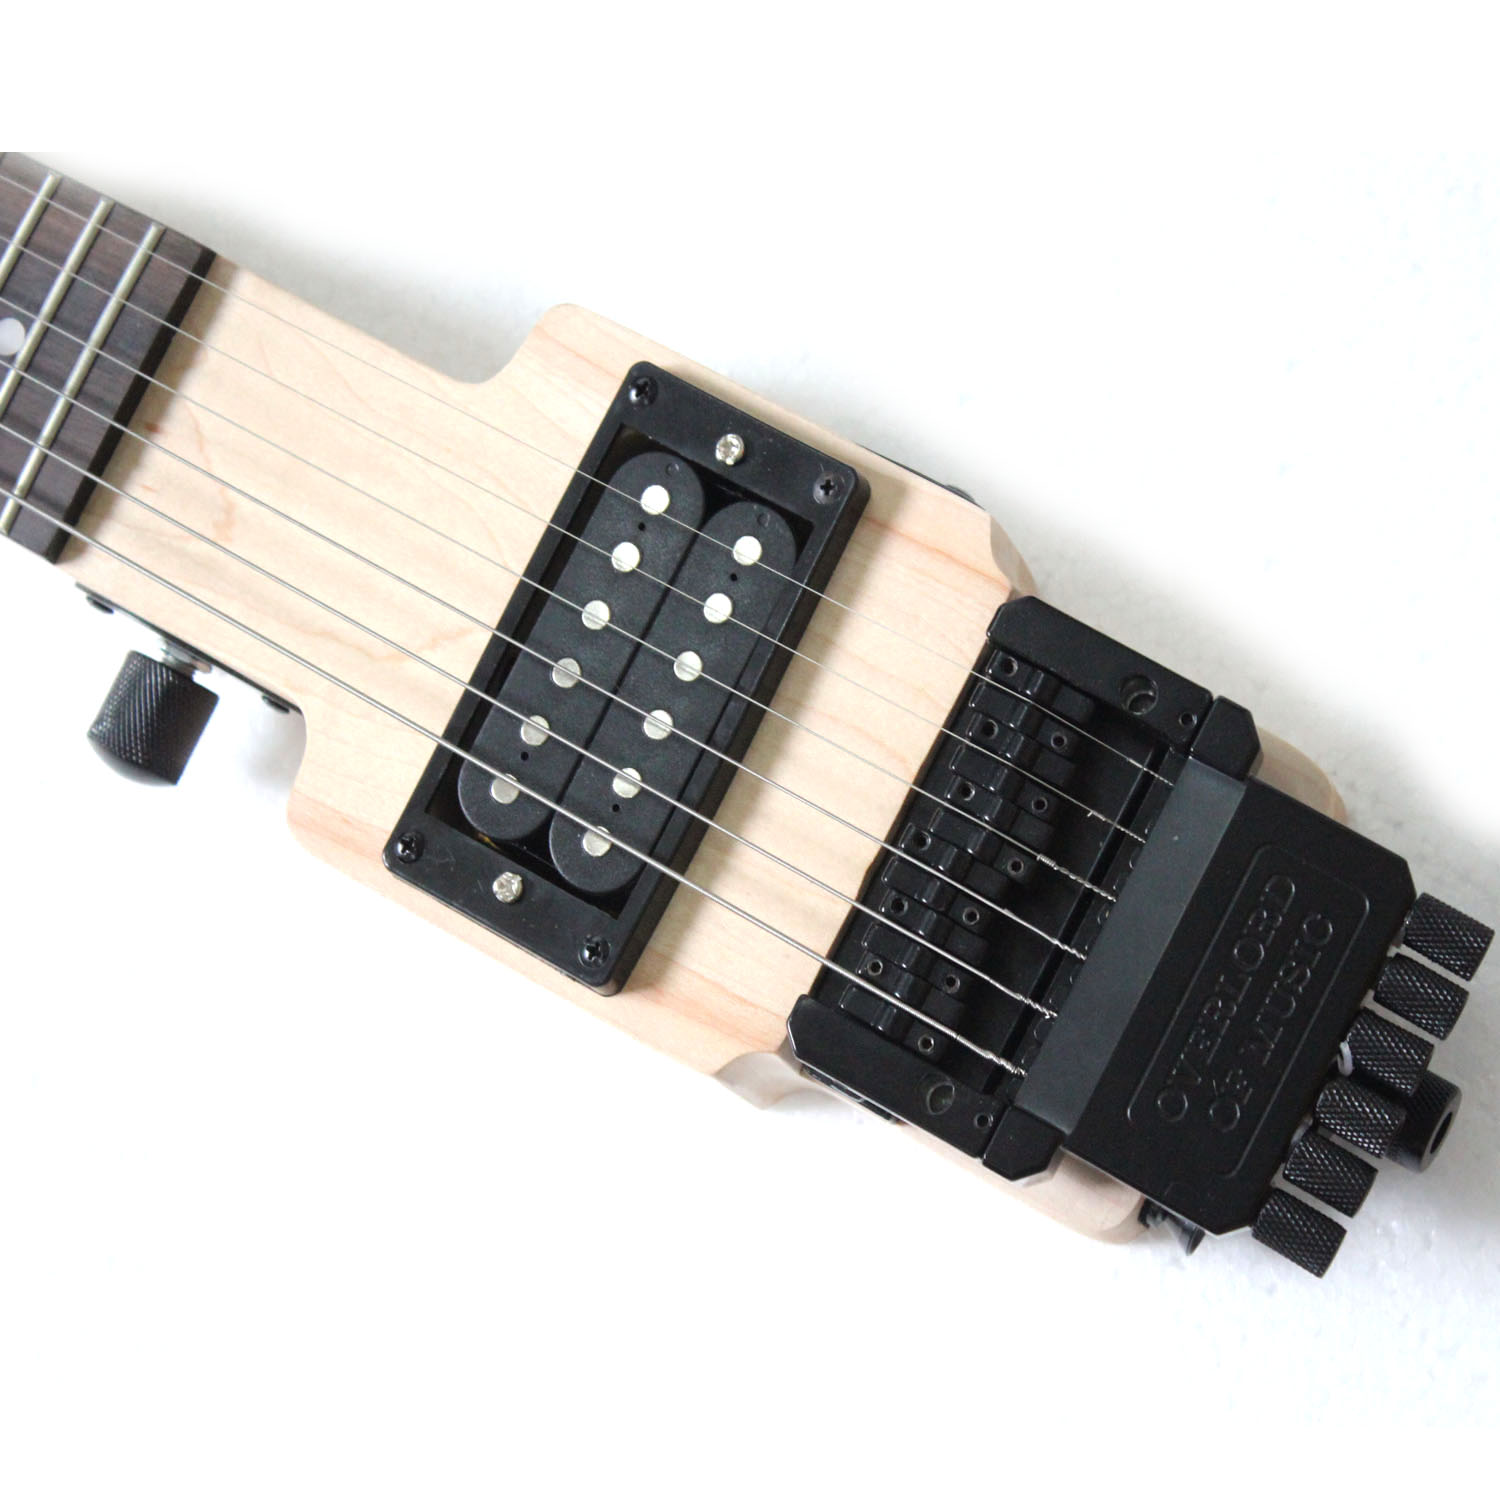 Electric guitar with tremolo